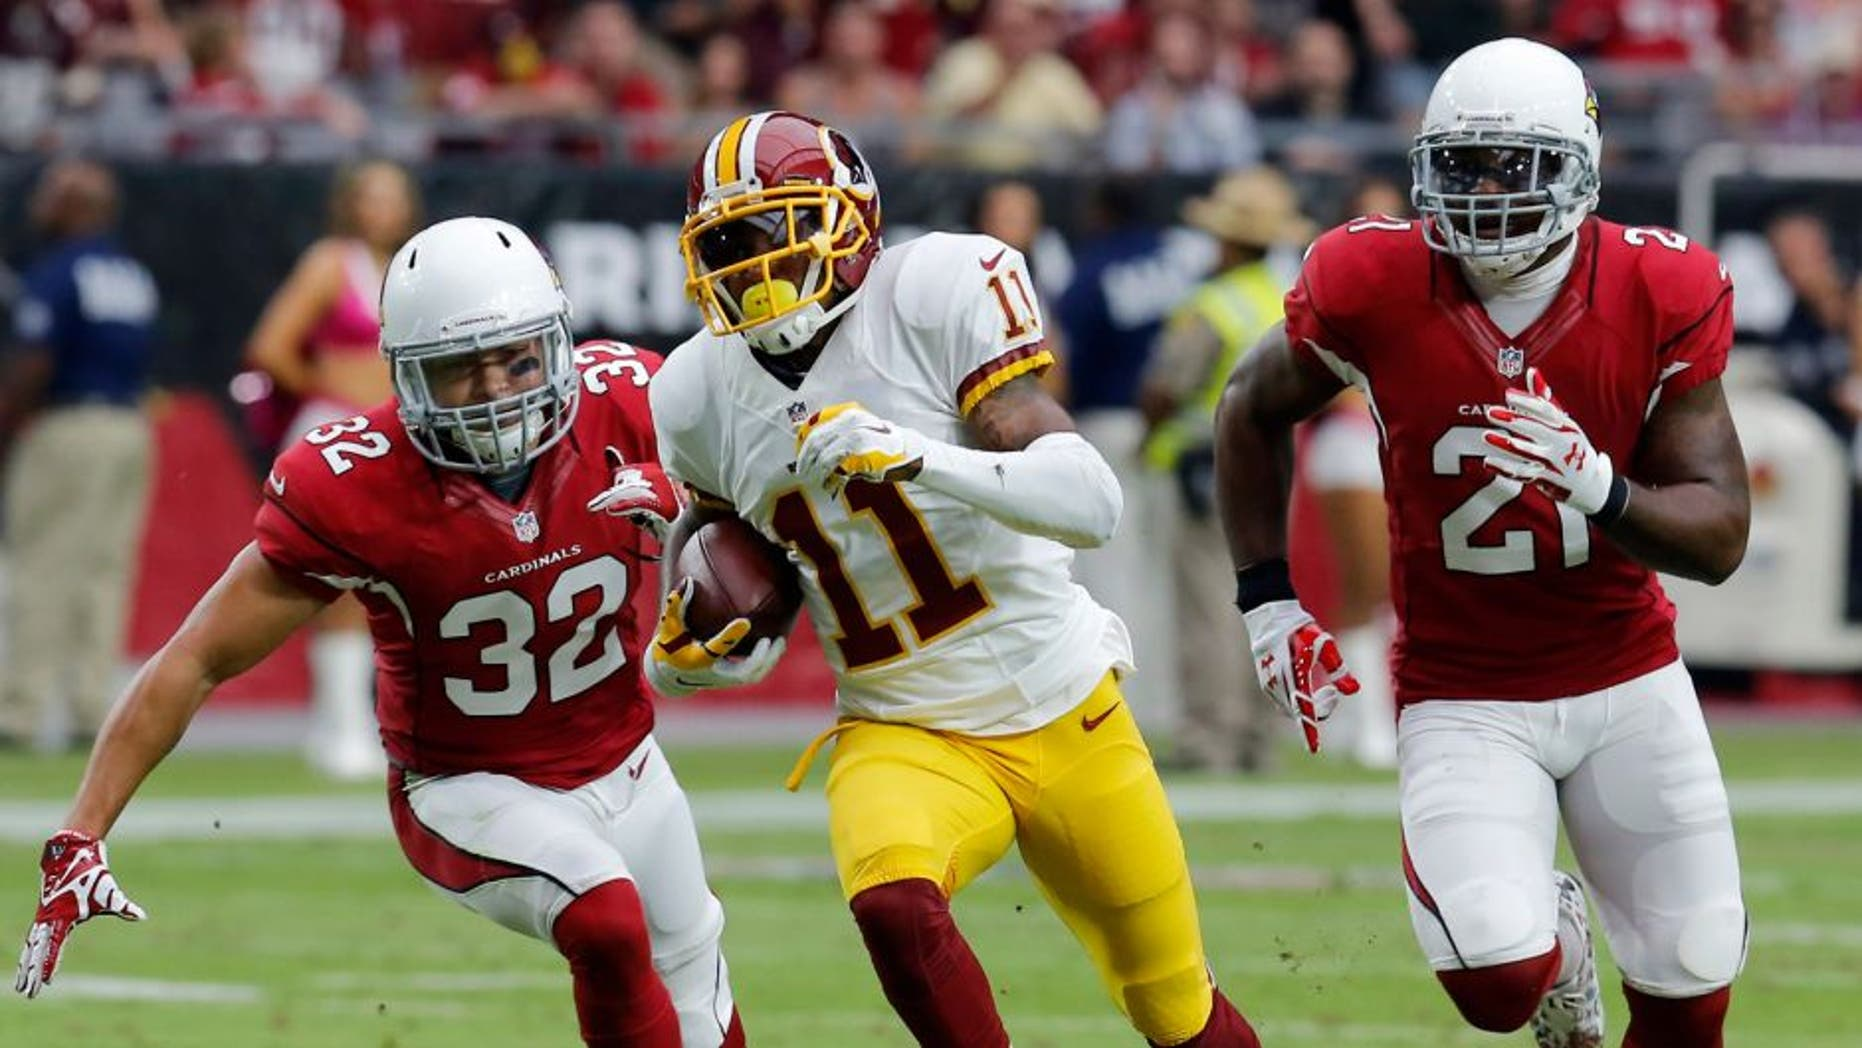 Washington Redskins wide receiver DeSean Jackson (11) runs for a touchdown as Arizona Cardinals free safety Tyrann Mathieu (32) and Patrick Peterson (21) pursue during the first half of an NFL football game, Sunday, Oct. 12, 2014, in Glendale, Ariz.(AP Photo/Rick Scuteri)